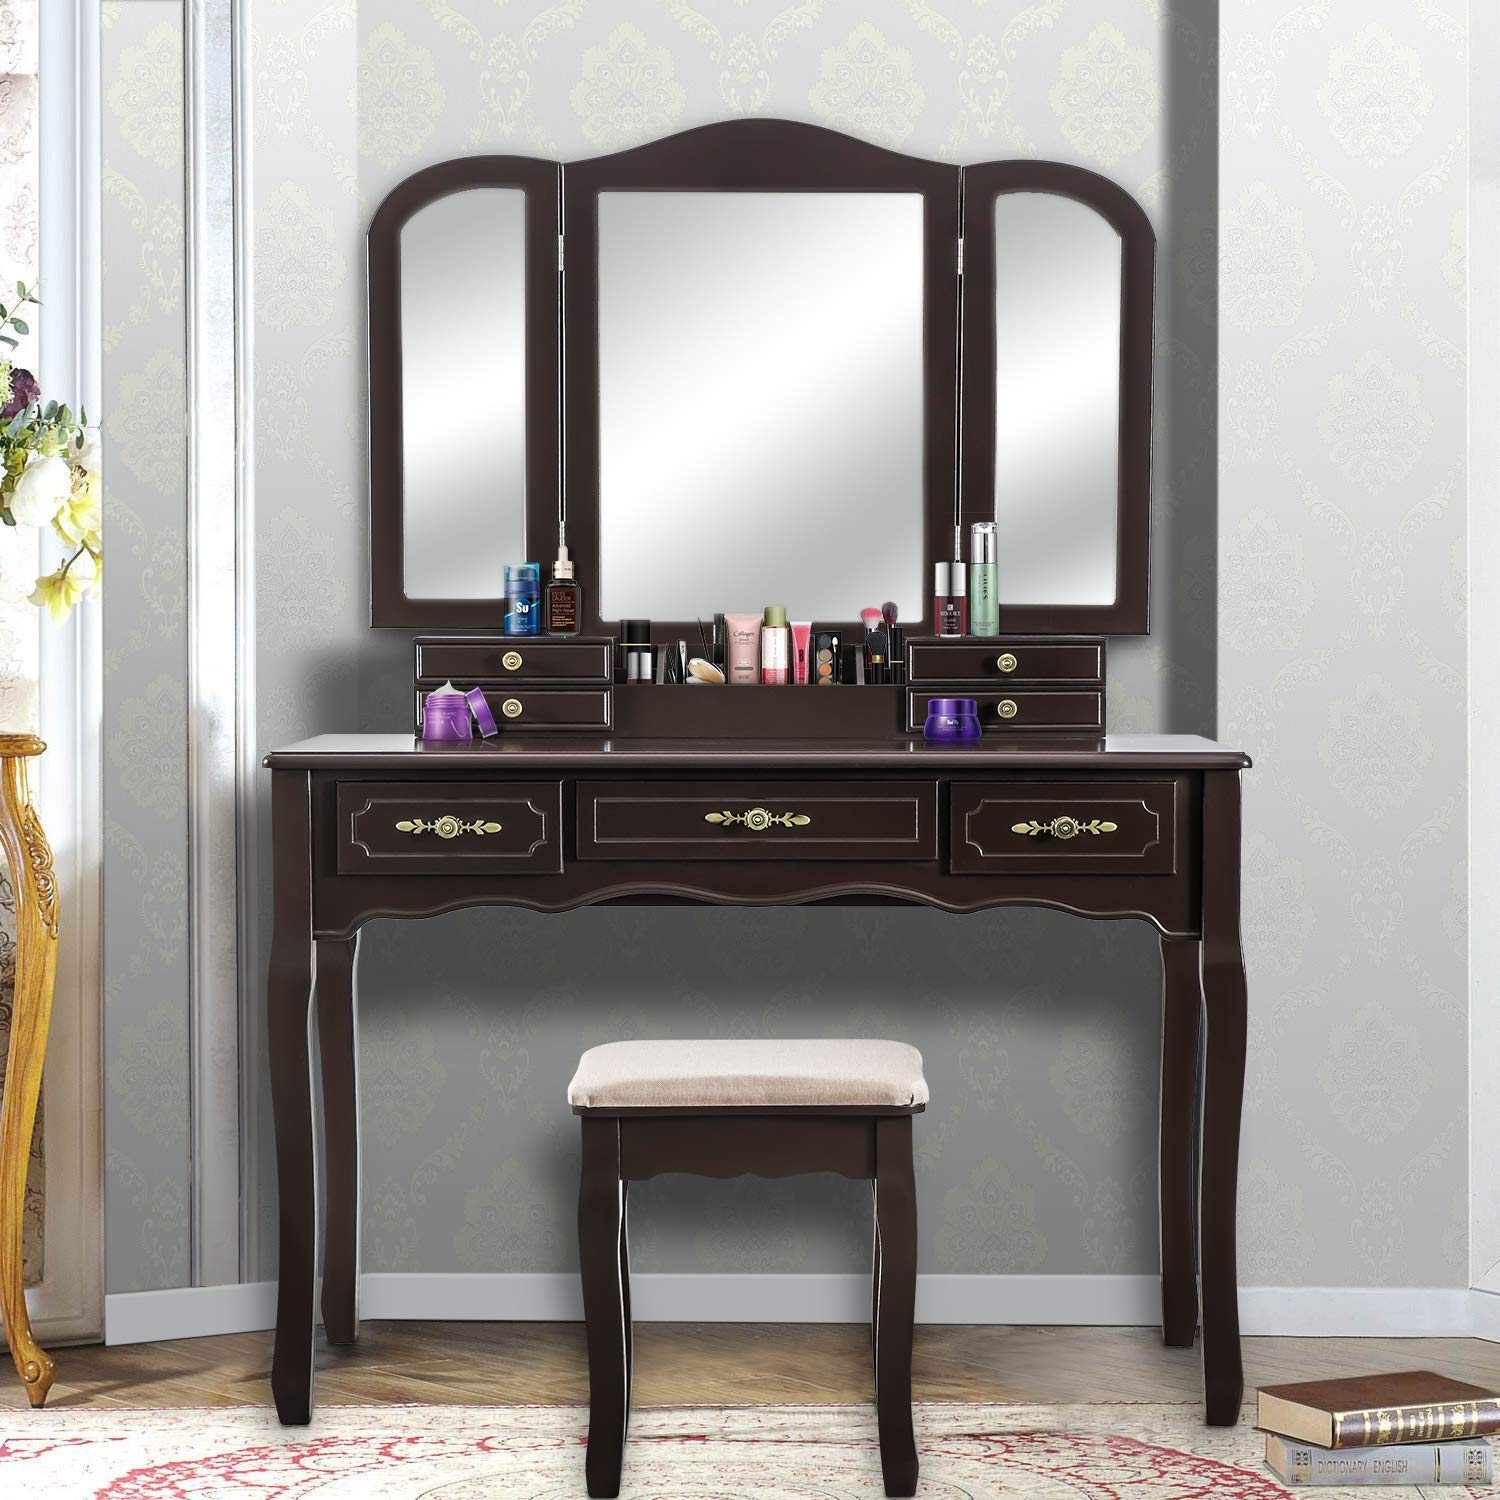 Youke Vanity Set Tri Folding Necklace Hooked Mirror 7 Drawers Makeup Dressing Table With Cushioned Stool Easy Assemble Brown Buy Online In Aruba At Aruba Desertcart Com Productid 96941741